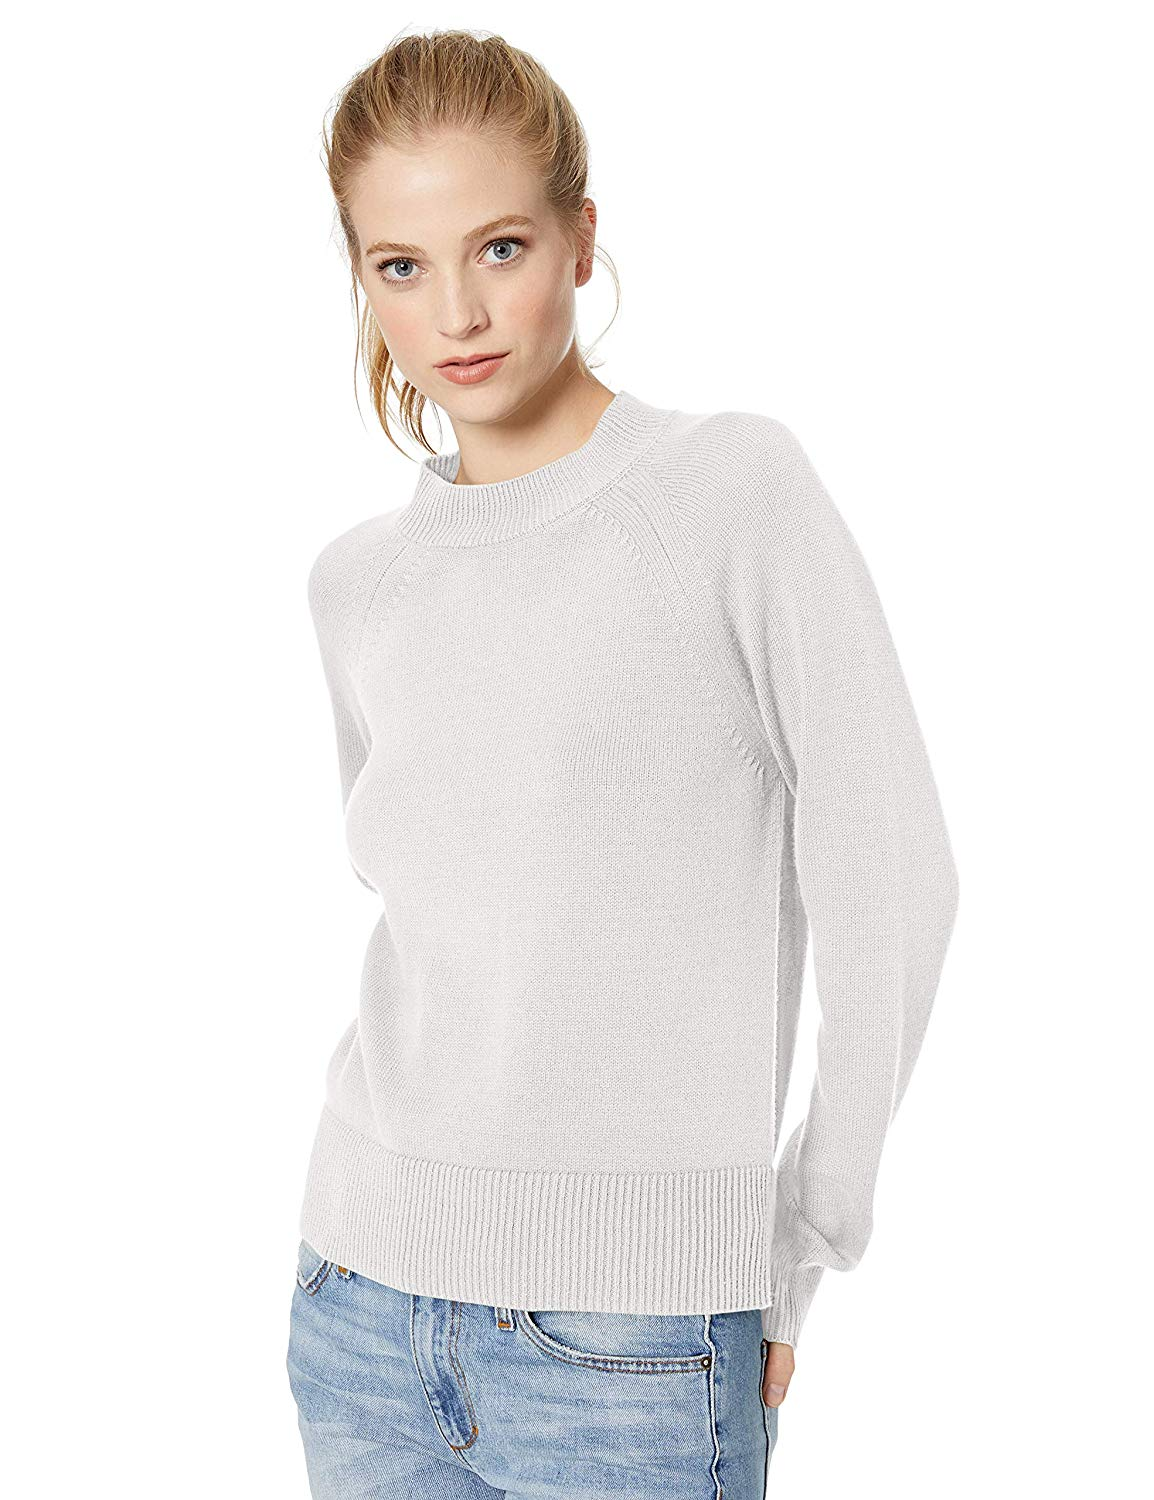 9a07bcd830d Daily Ritual Women s 100% Cotton Mock-Neck Sweater – ProBestGear